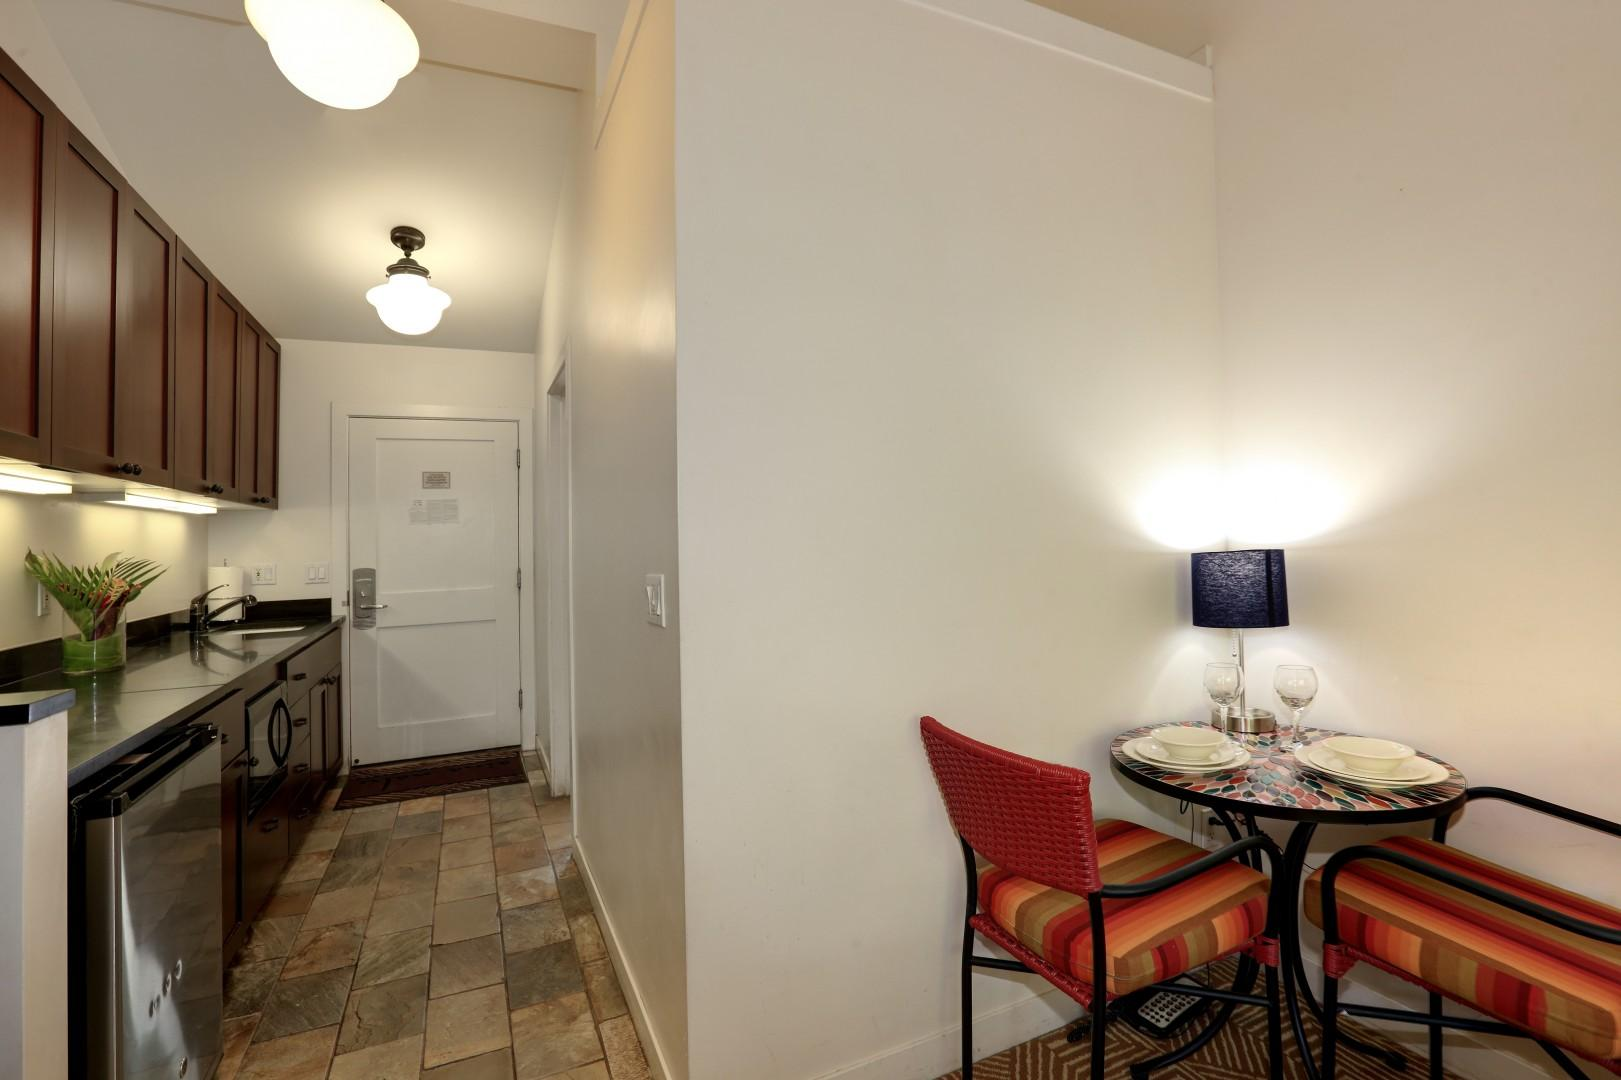 Dining for two with all the kitchen amenities needed